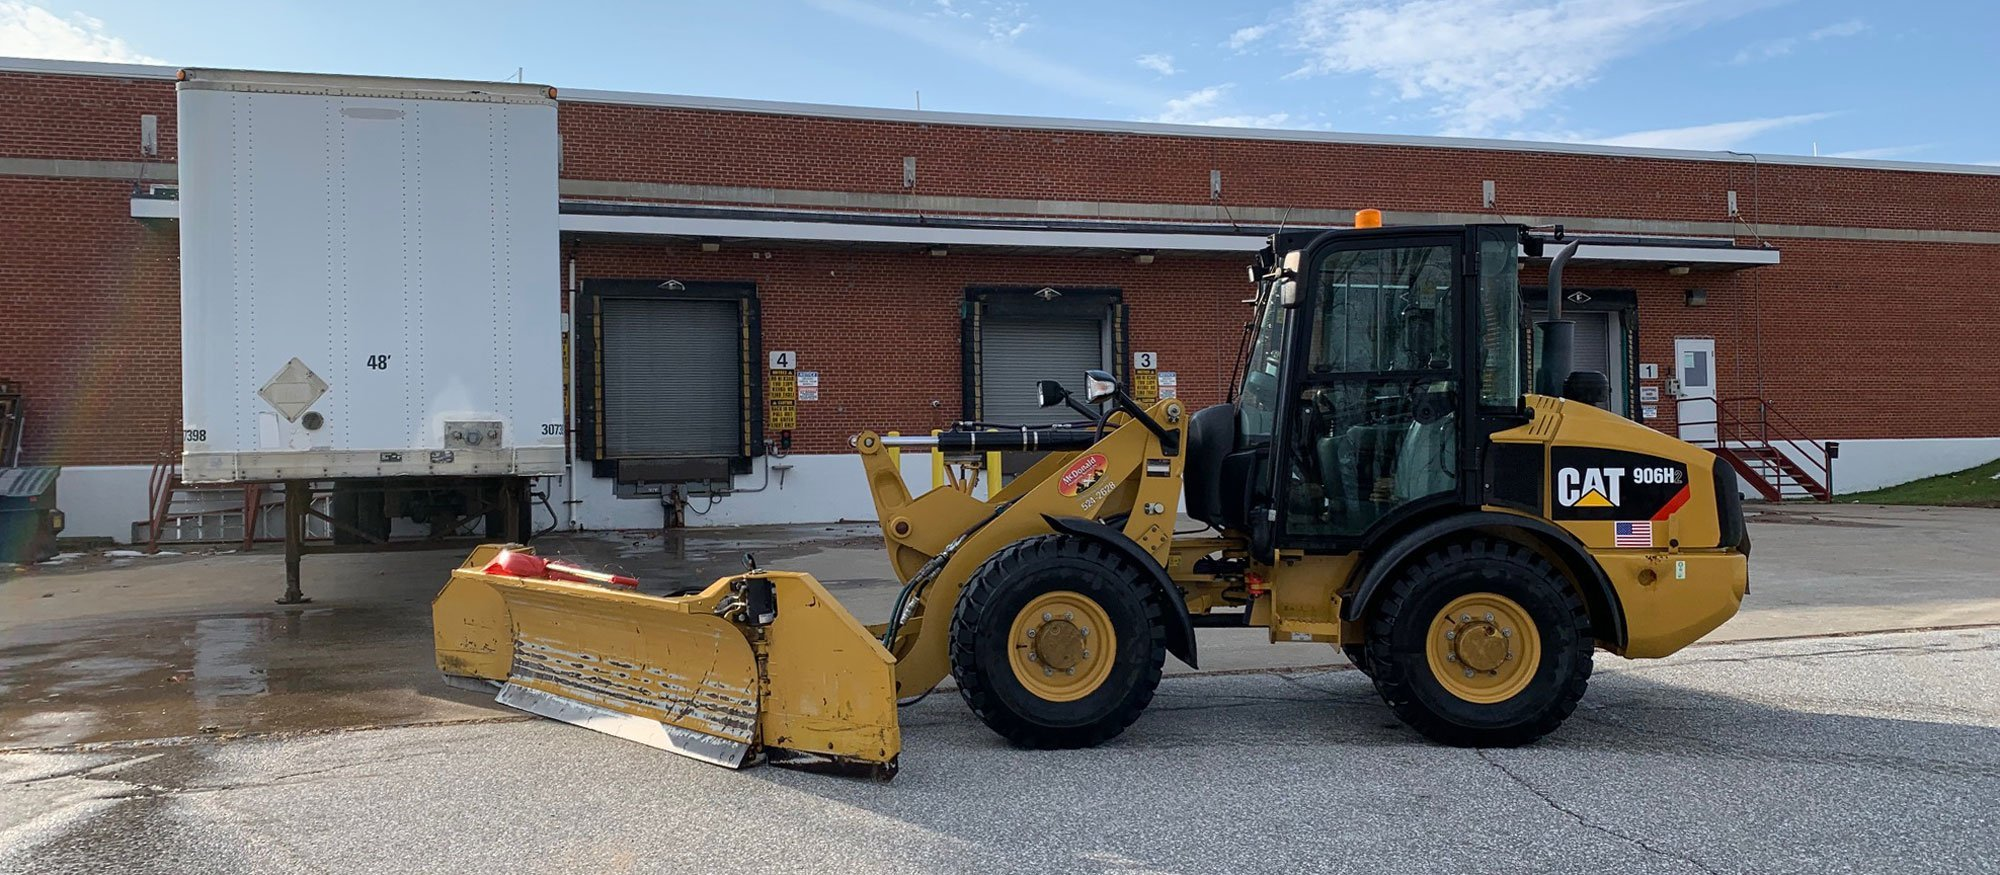 St-Albans-Commercial-Snow-Removal-by-McDonald-Property-Maintenance-Loader-1